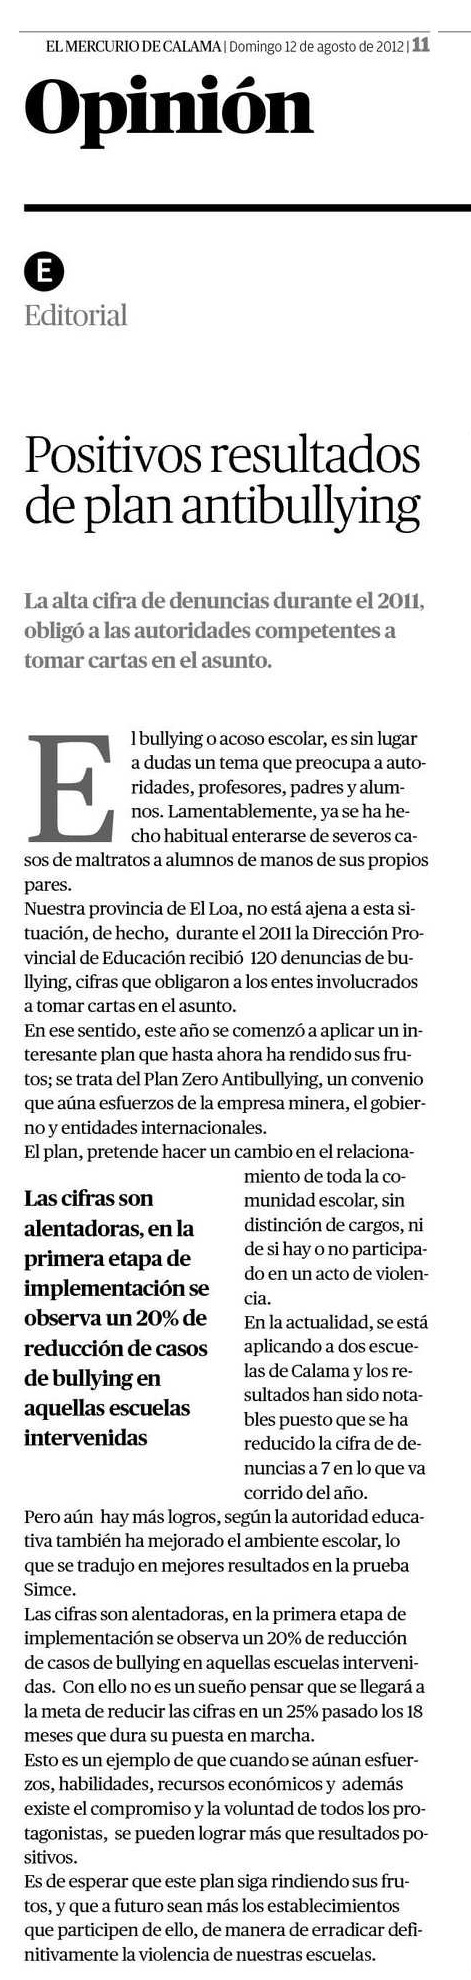 Editorial Mercurio de Calama-Chile